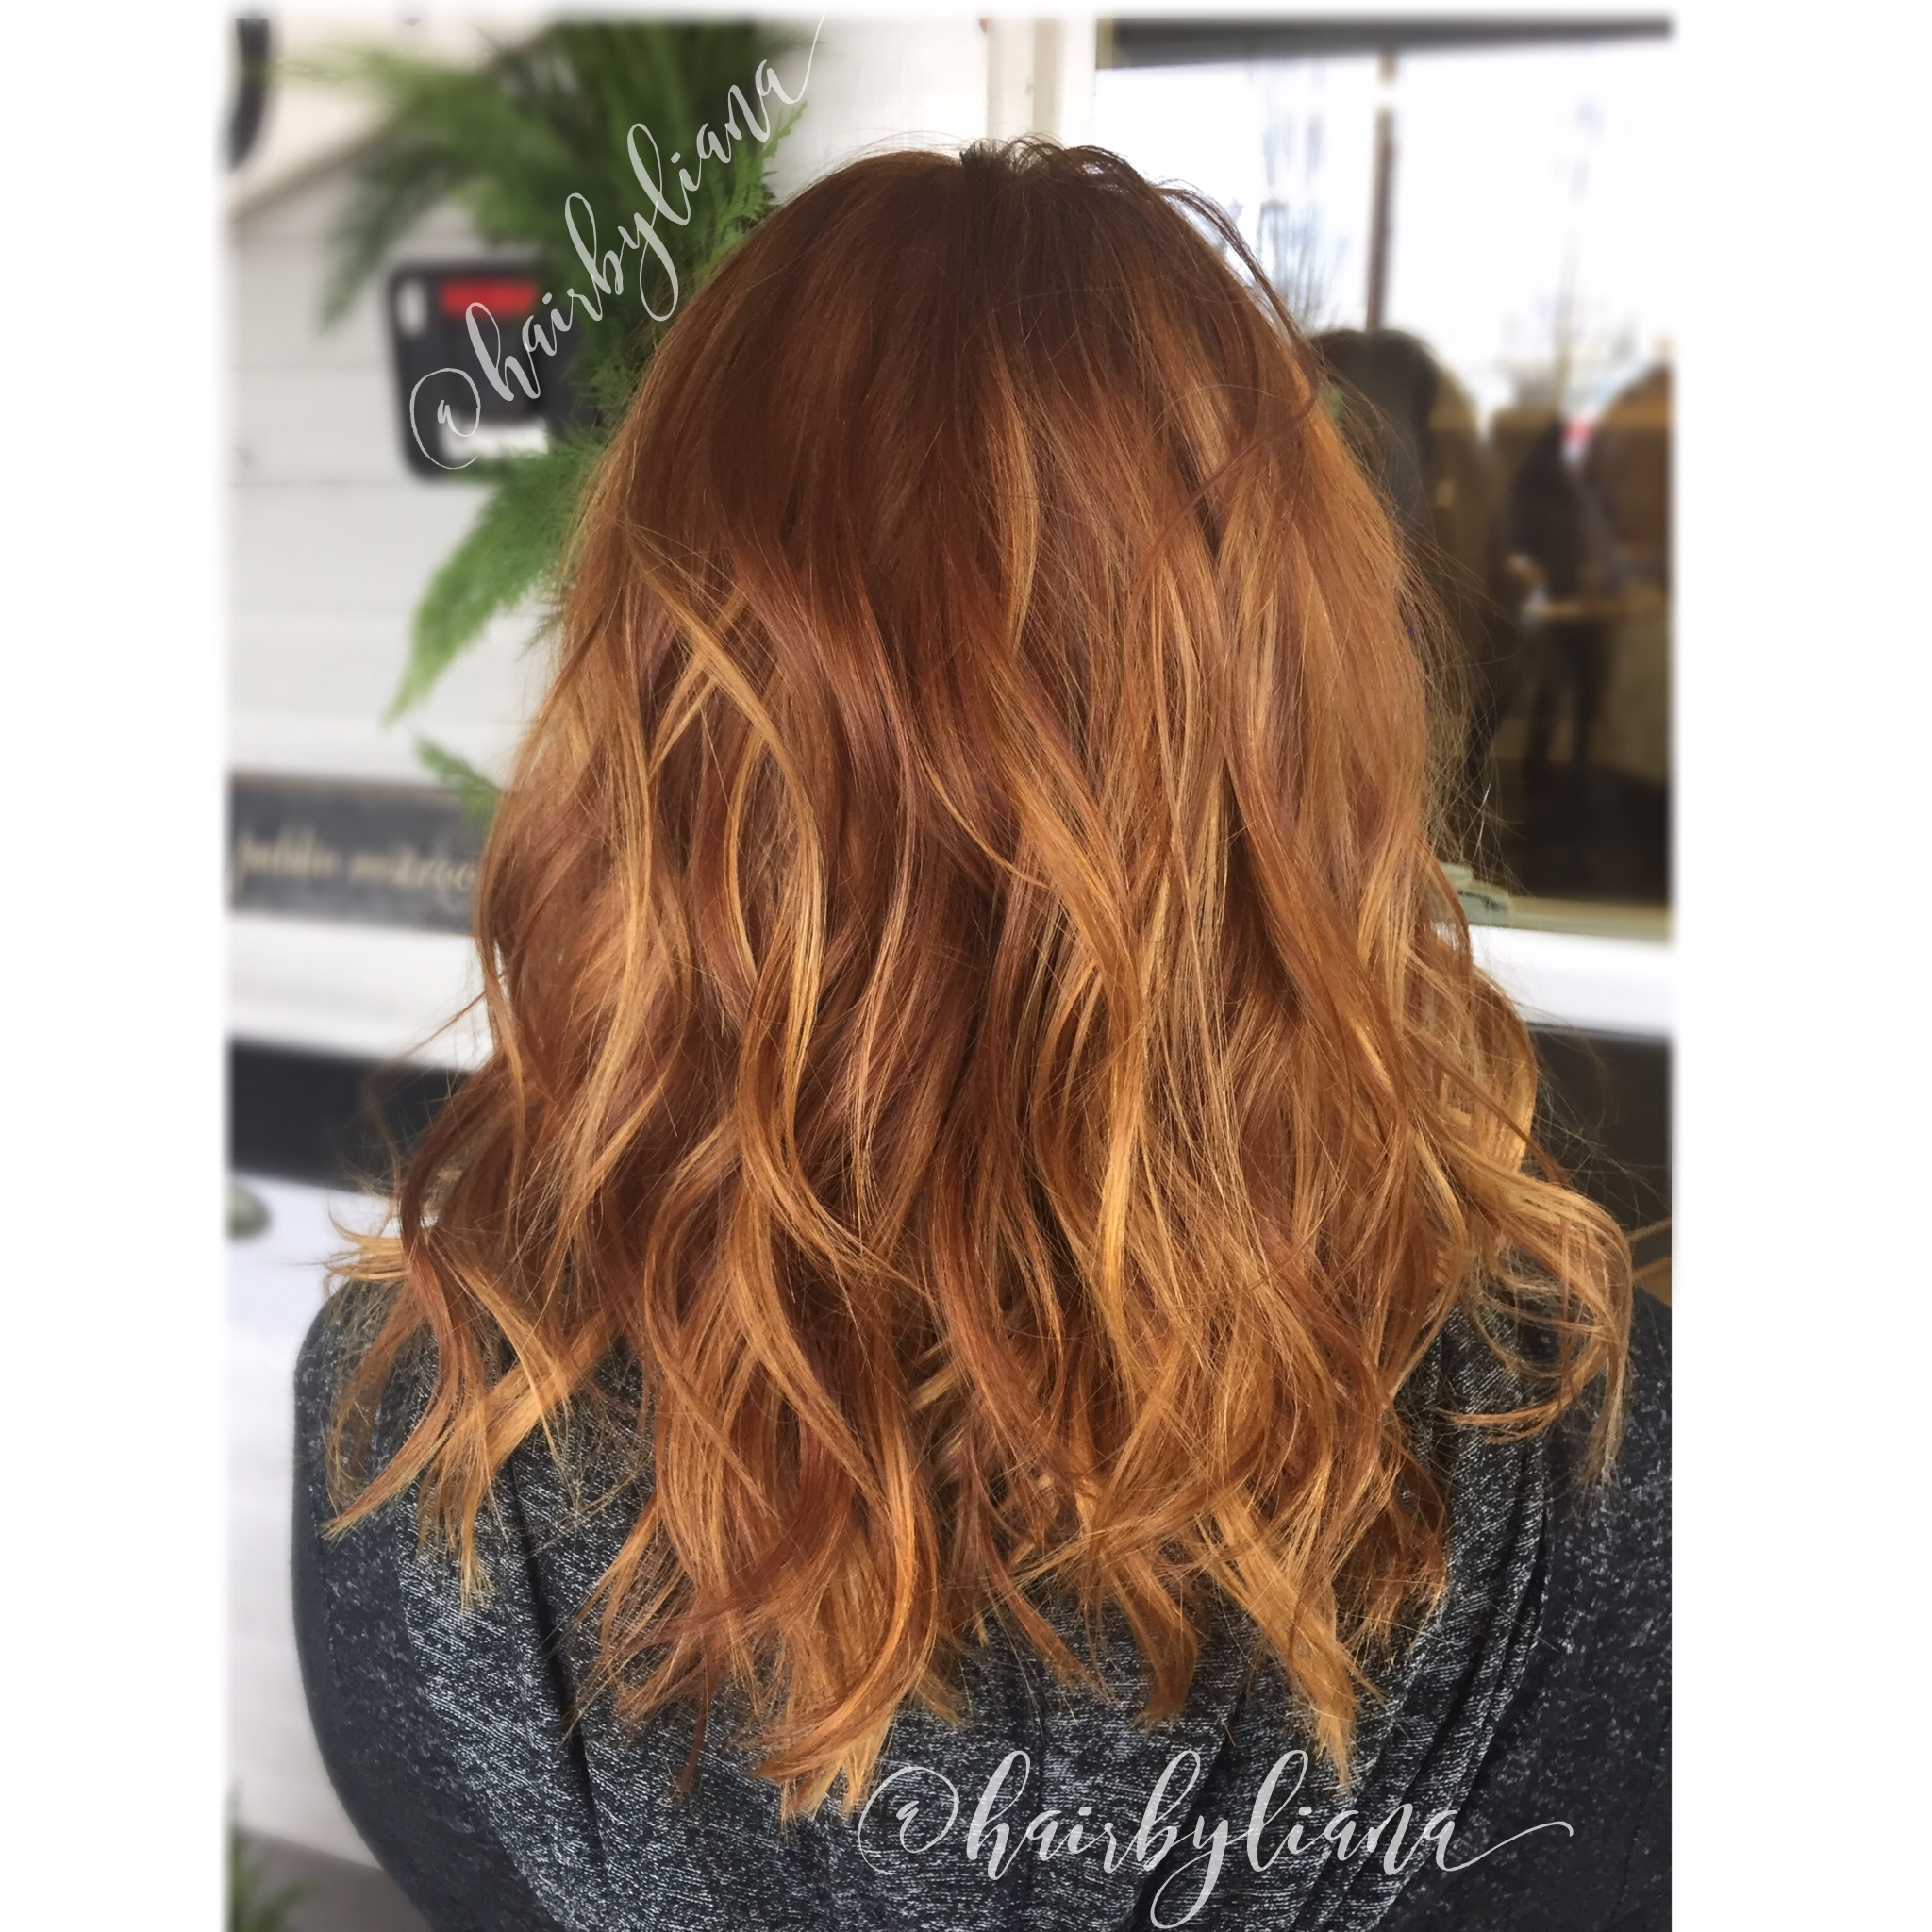 Copper Hair With Golden Blonde Balayage Highlights Natural Red Hair Medium Length Hair Soft Waves Color By Natural Red Hair Red Blonde Hair Red To Blonde